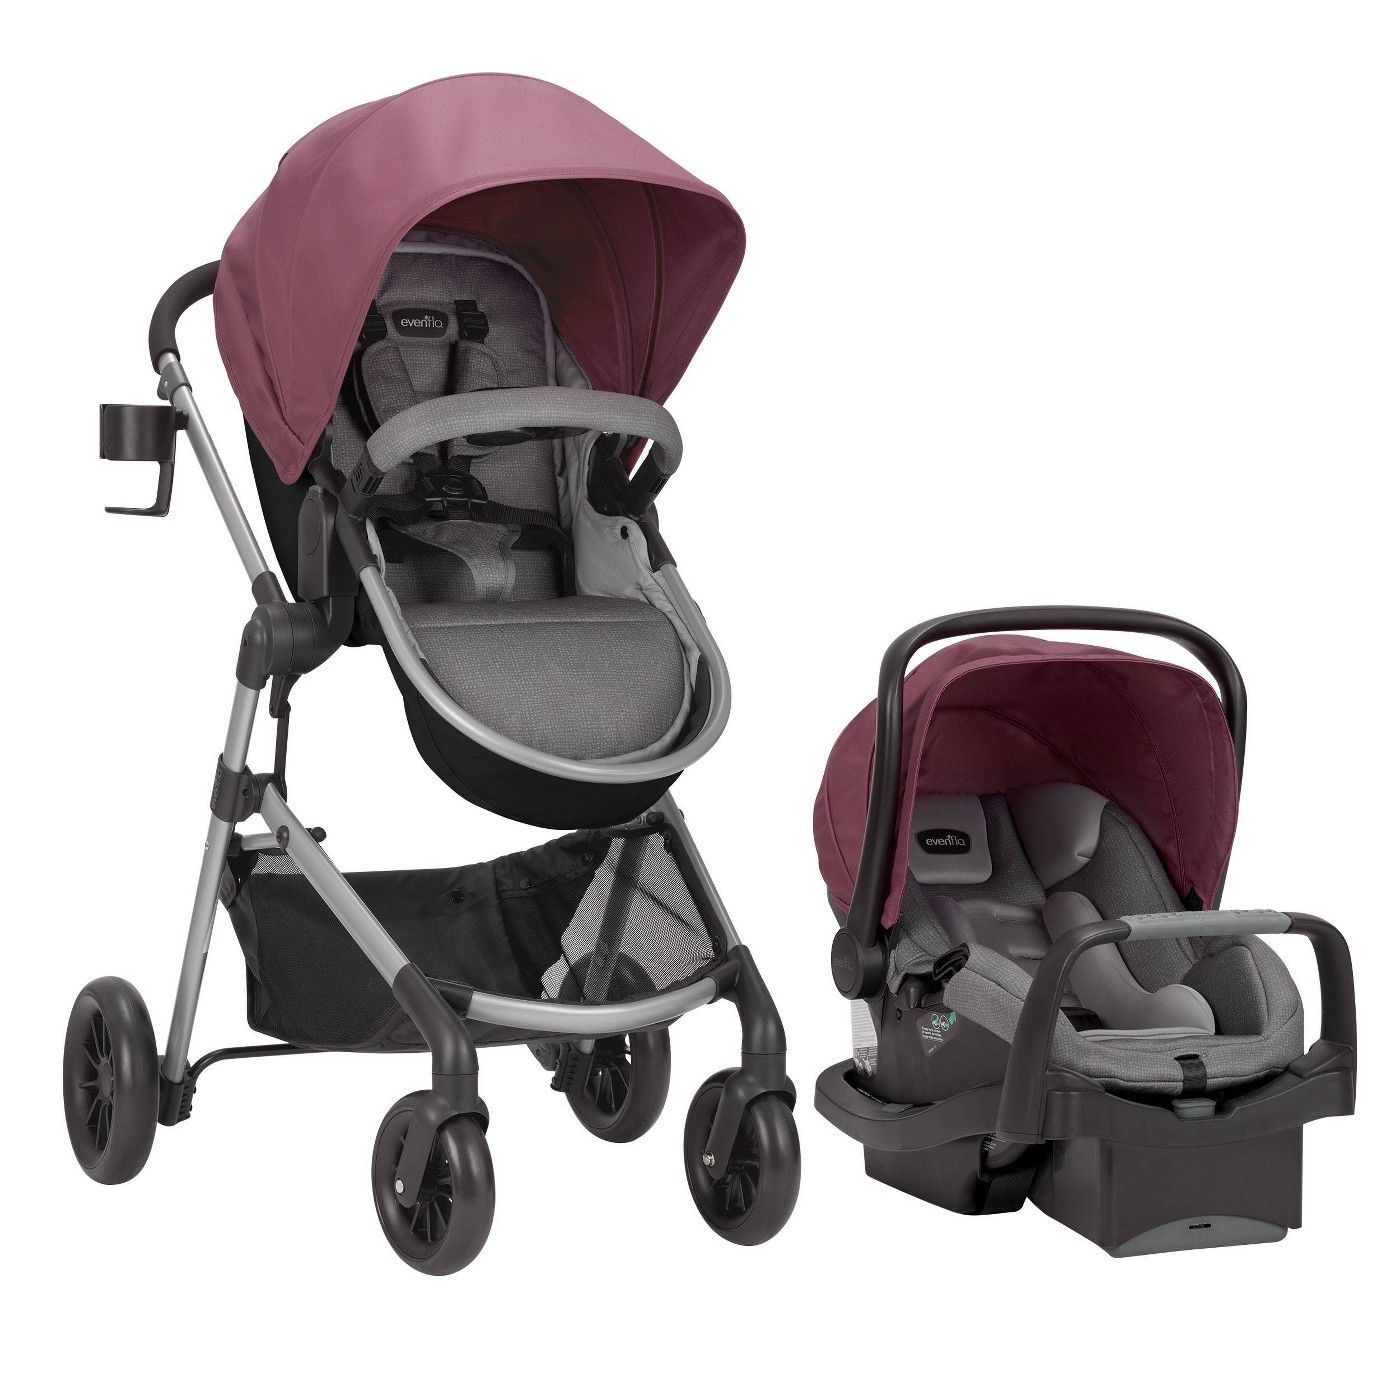 Evenflo Pivot Modular Travel System with SafeMax Infant